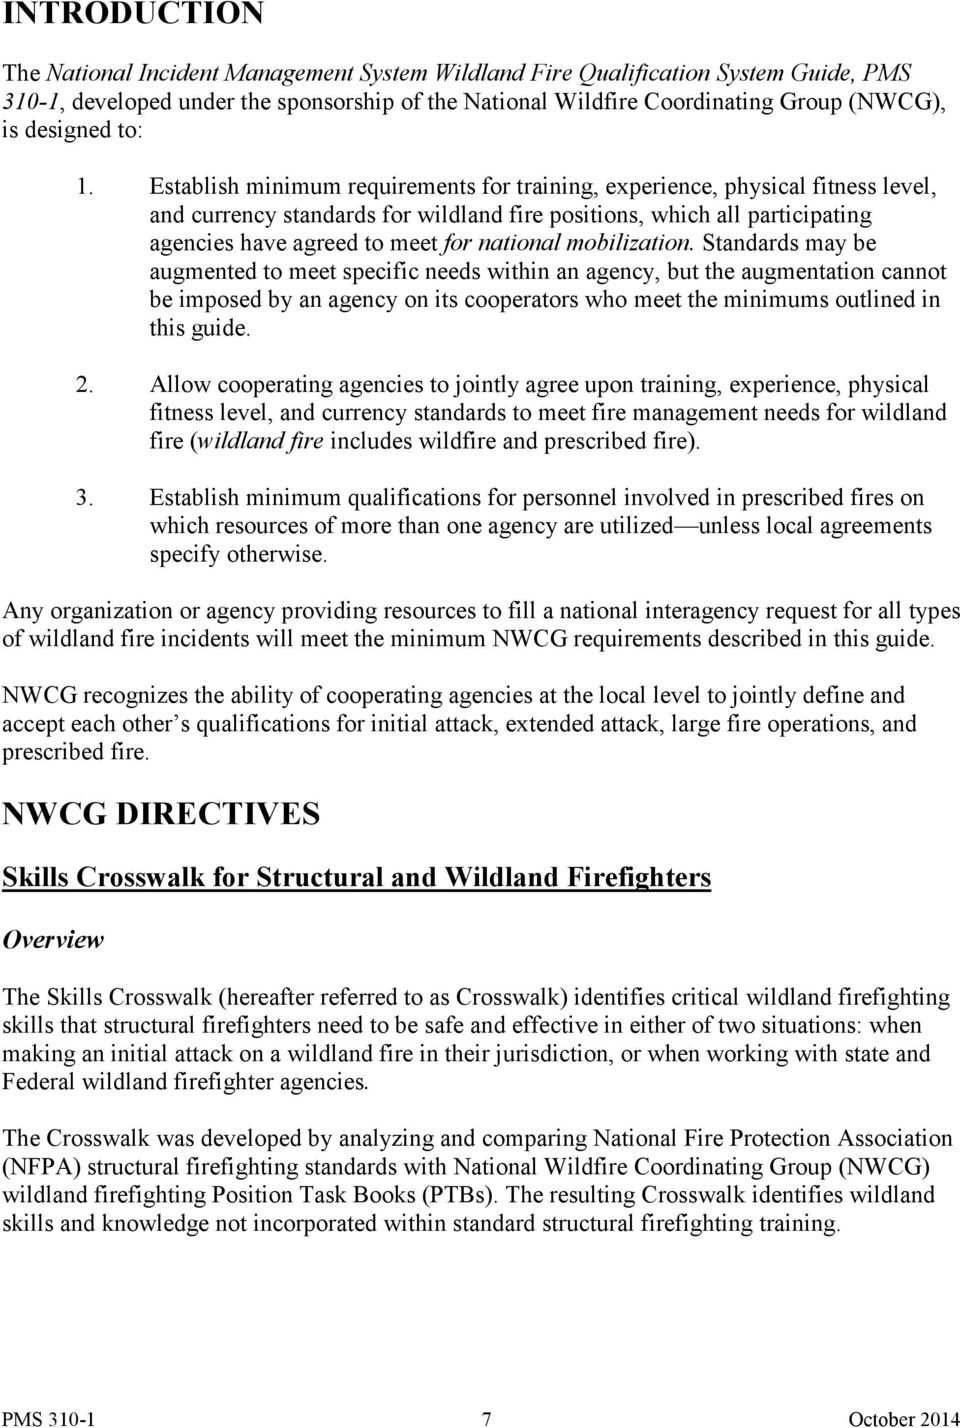 Establish minimum requirements for training, experience, physical fitness level, and currency standards for wildland fire positions, which all participating agencies have agreed to meet for national